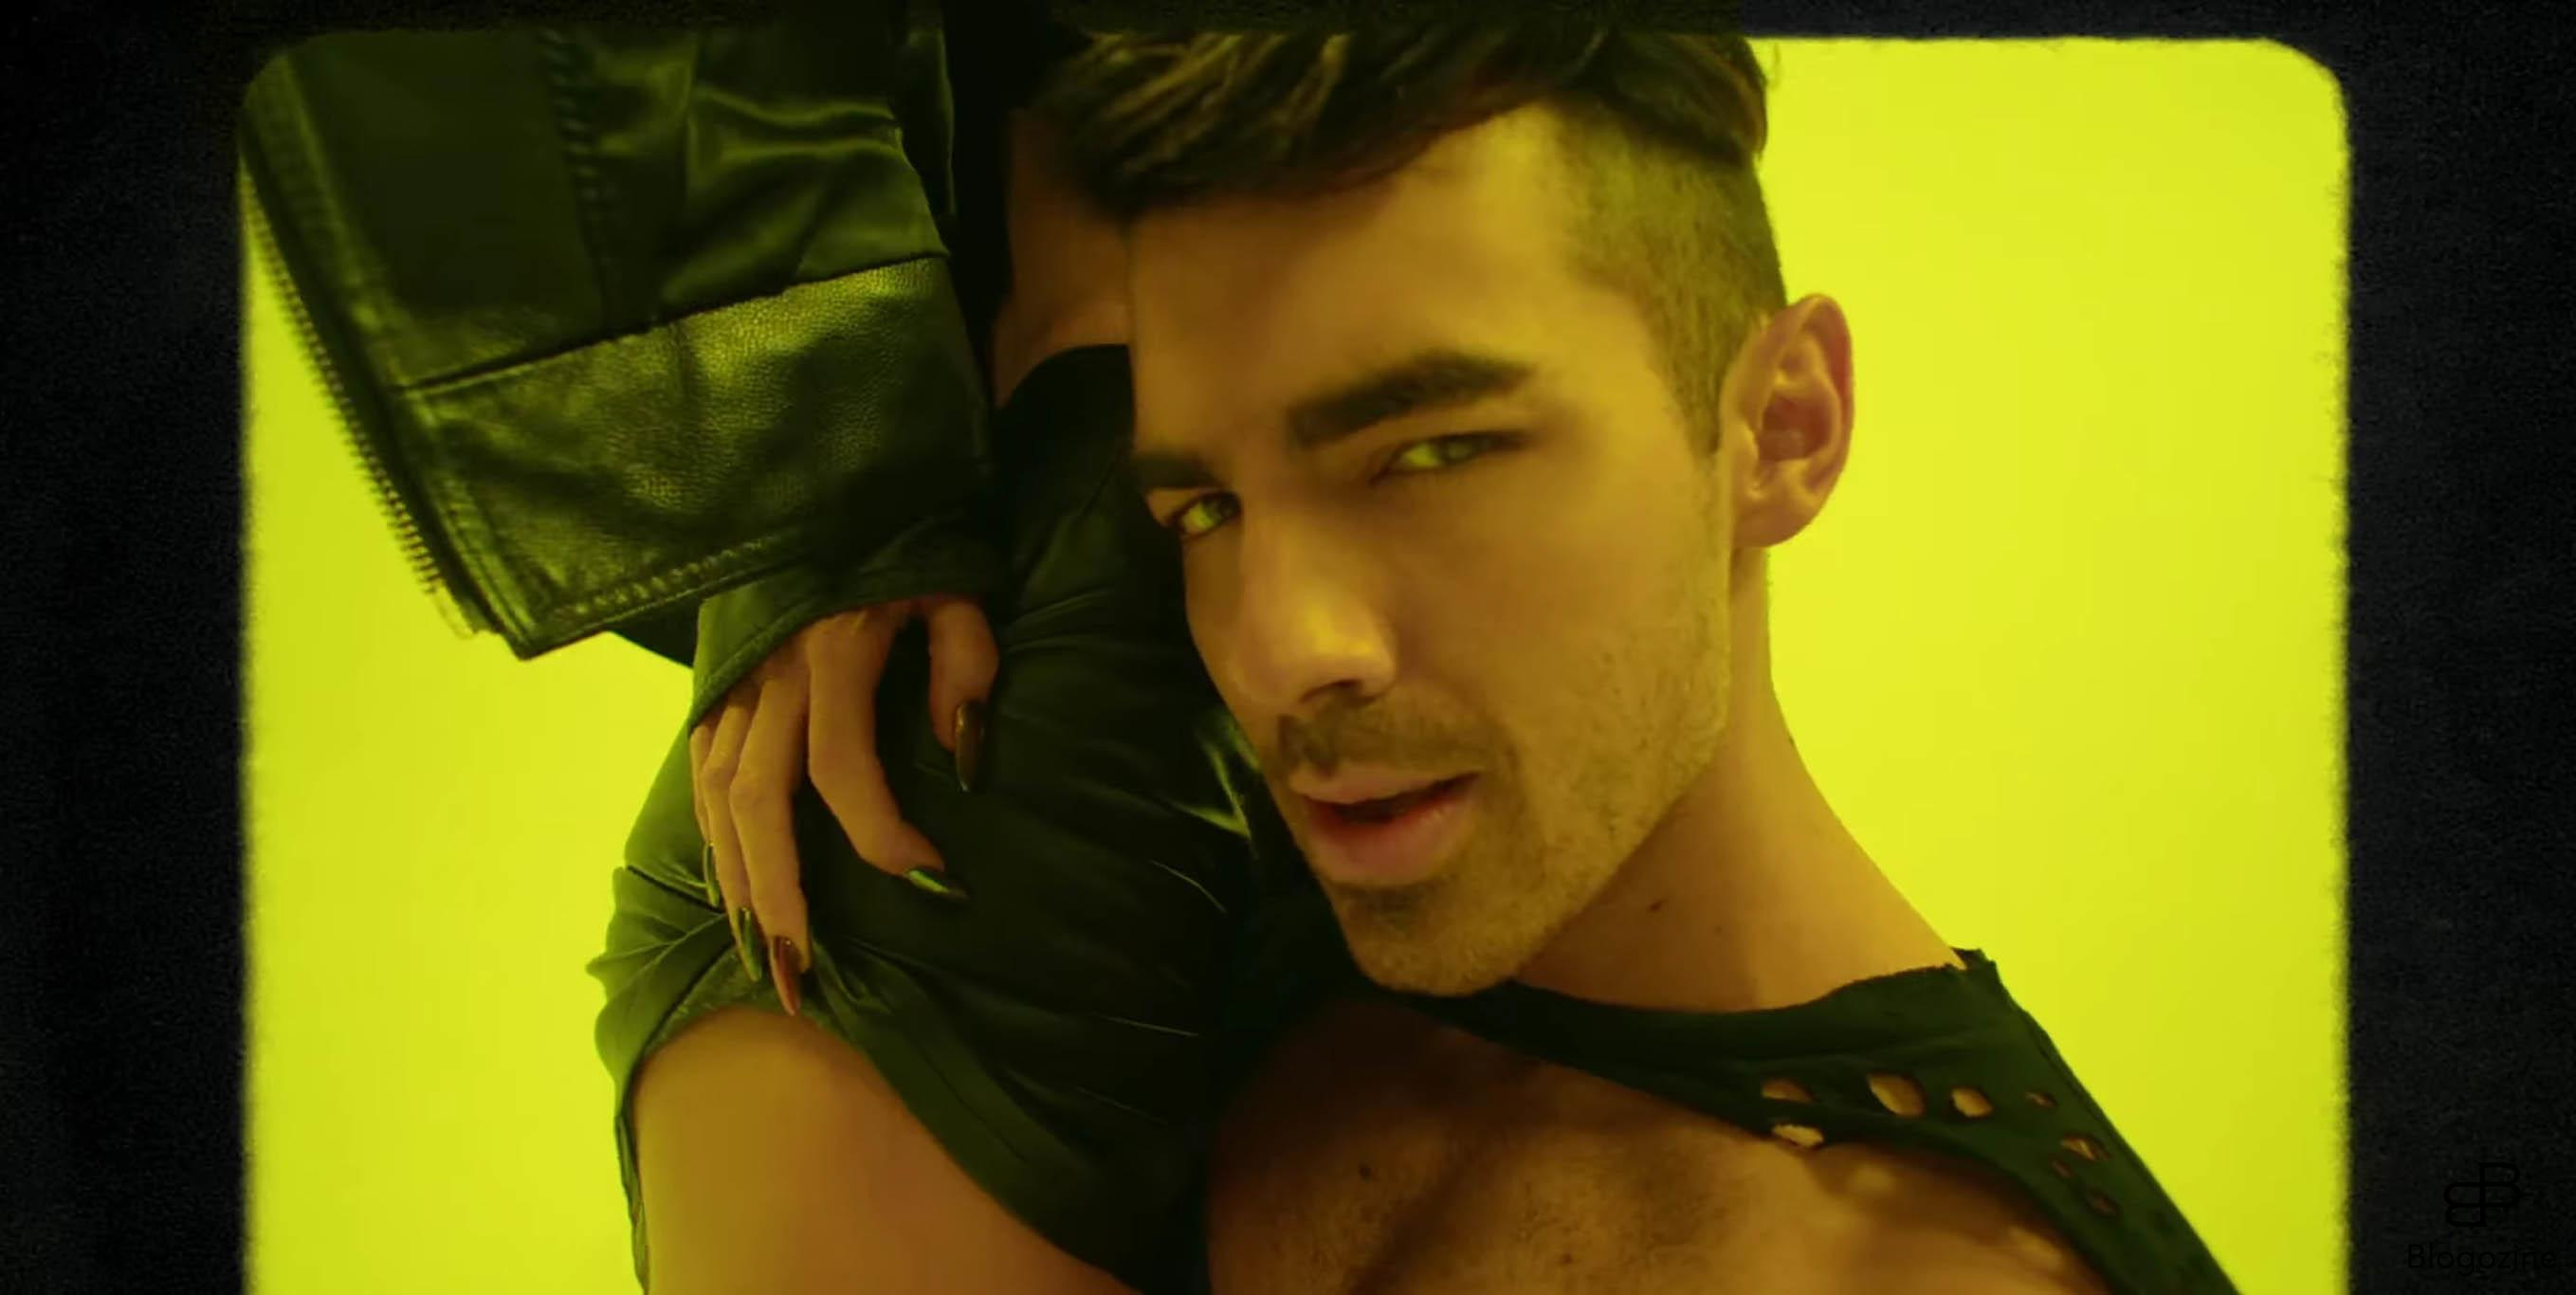 6350445 12-10-2016 Joe Jonas in new music video for his band DNCE?s new song ?Body Moves? Pictured: Joe Jonas Charlotte McKinney PLANET PHOTOS www.planetphotos.co.uk info@planetphotos.co.uk +44 (0)20 8883 1438 DISTR. STELLA PICTURES